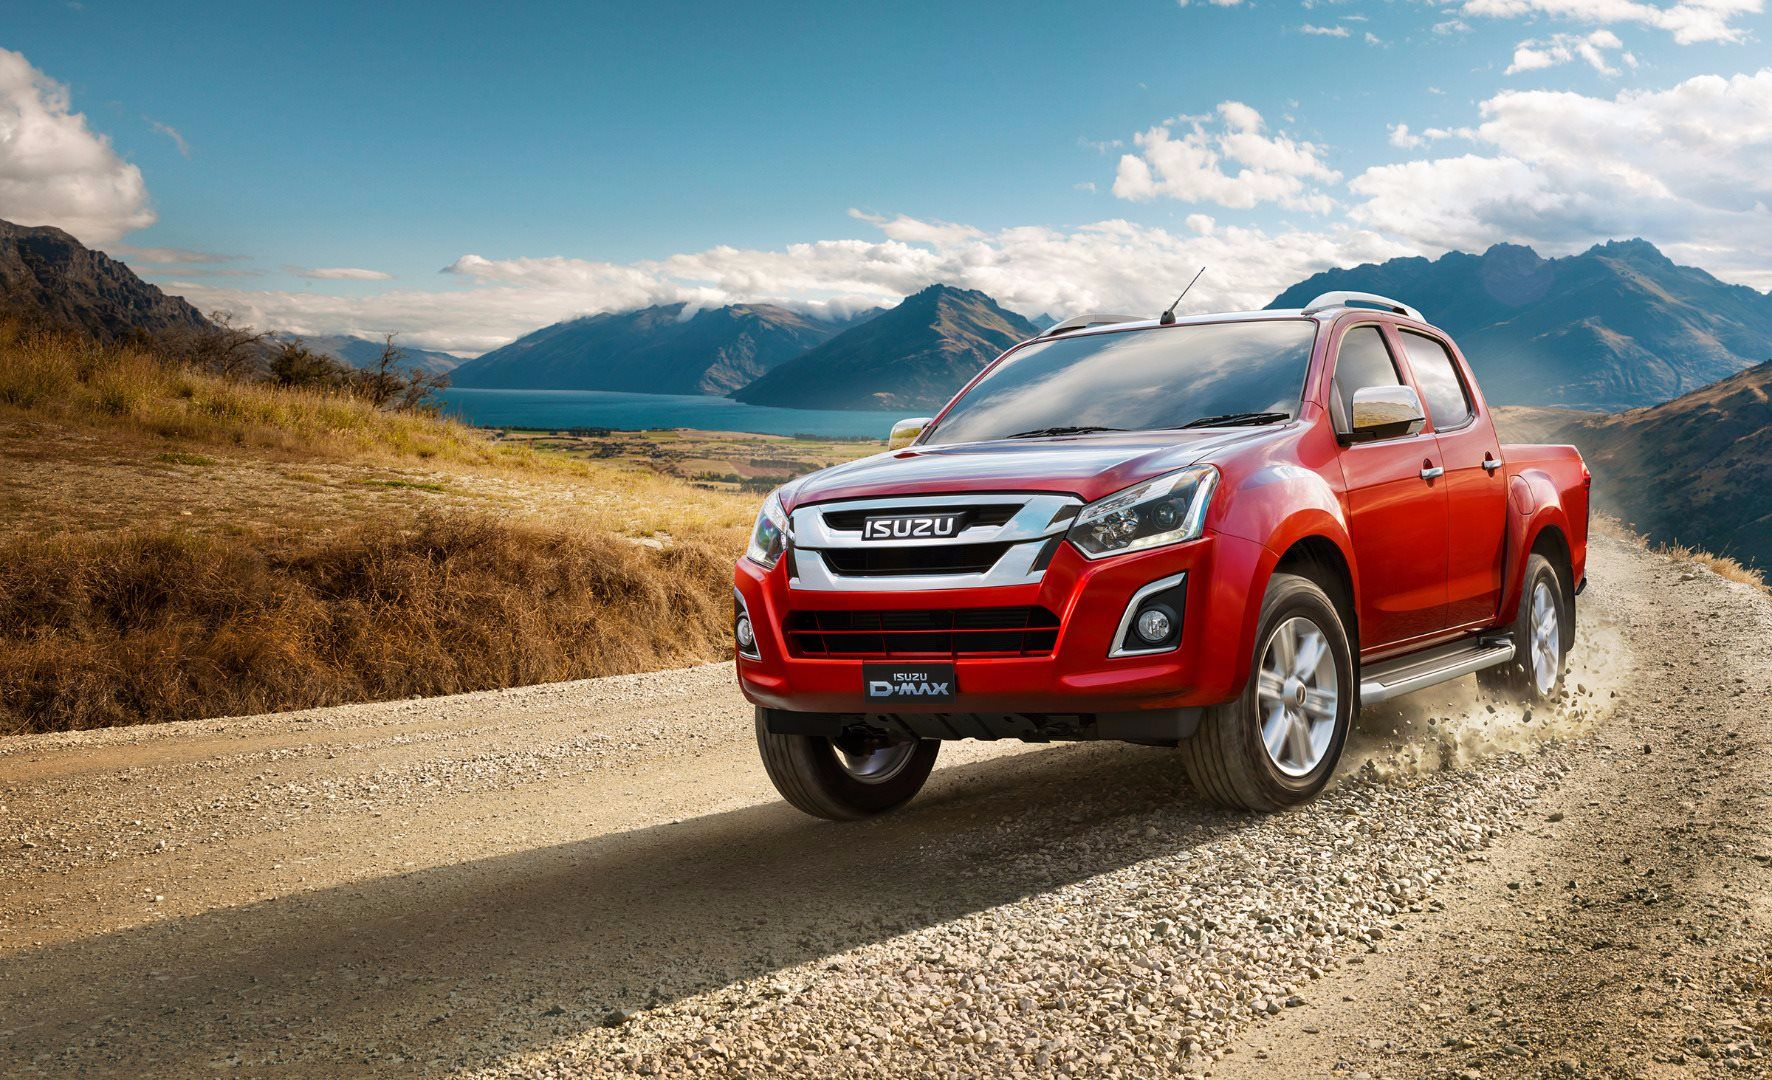 Come and see the Isuzu range of Pick Up's at the following shows